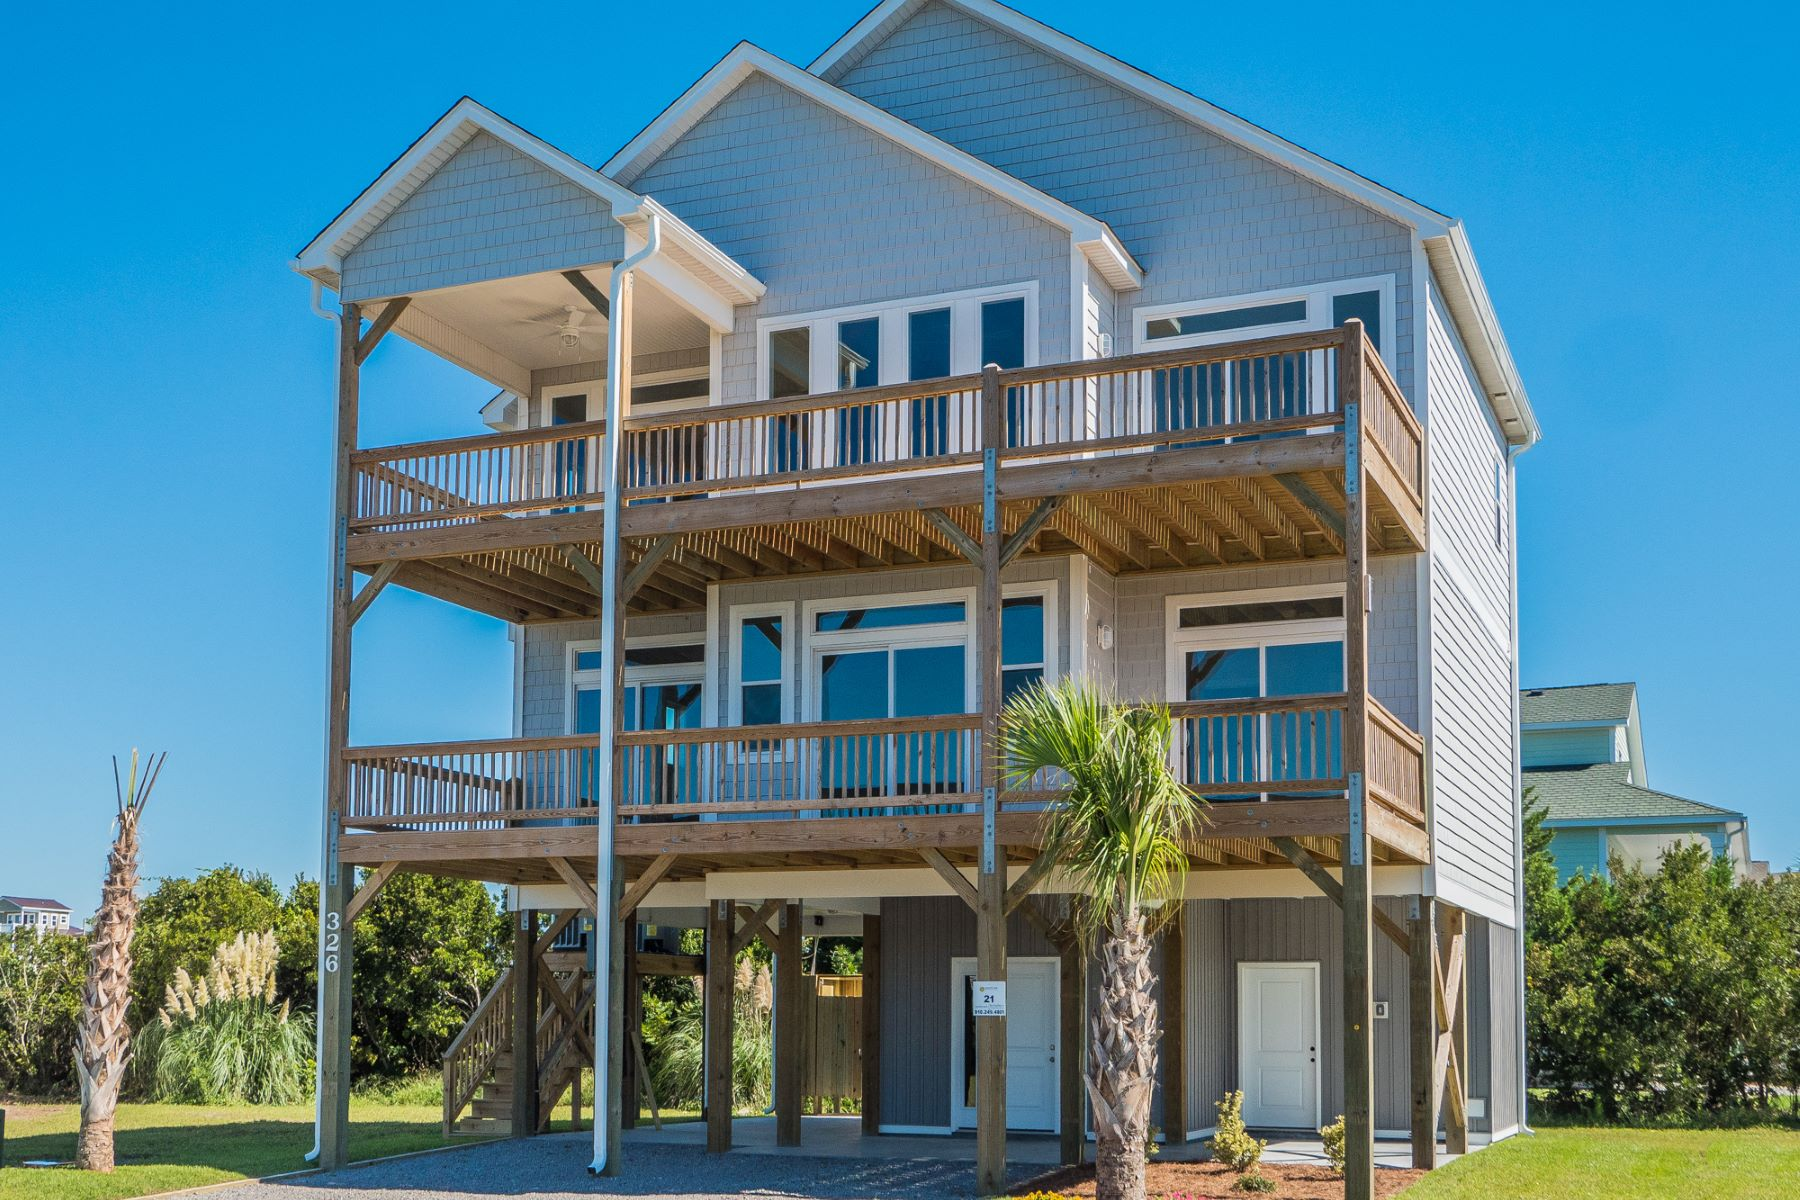 Single Family Home for Sale at Island Home in Nautic Bay Lot 27 Oceanaire, Surf City, North Carolina, 28445 United States